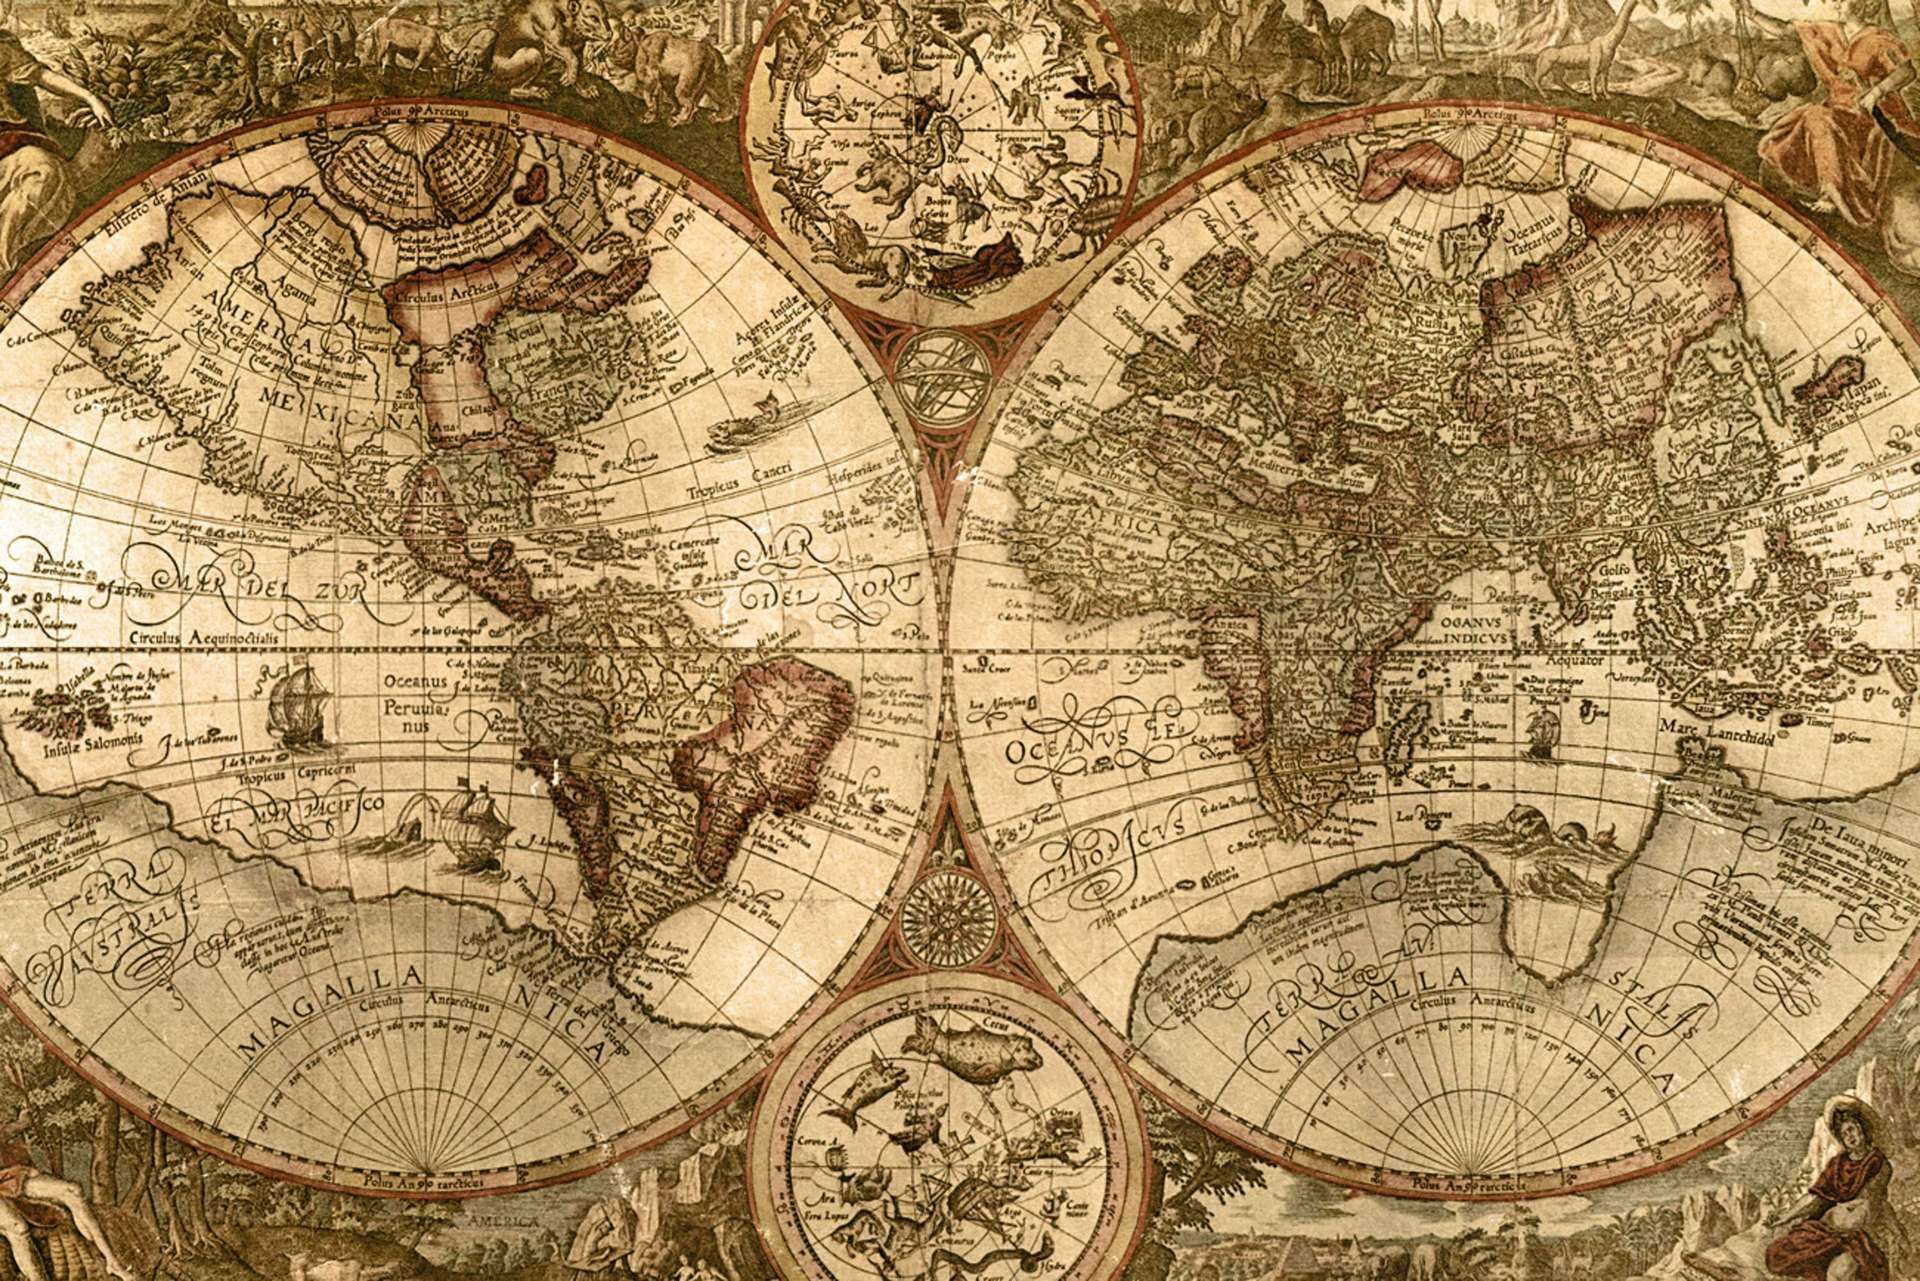 X1920ancientwallpapers483g 19201281 antique world map x1920ancientwallpapers483g 19201281 gumiabroncs Gallery